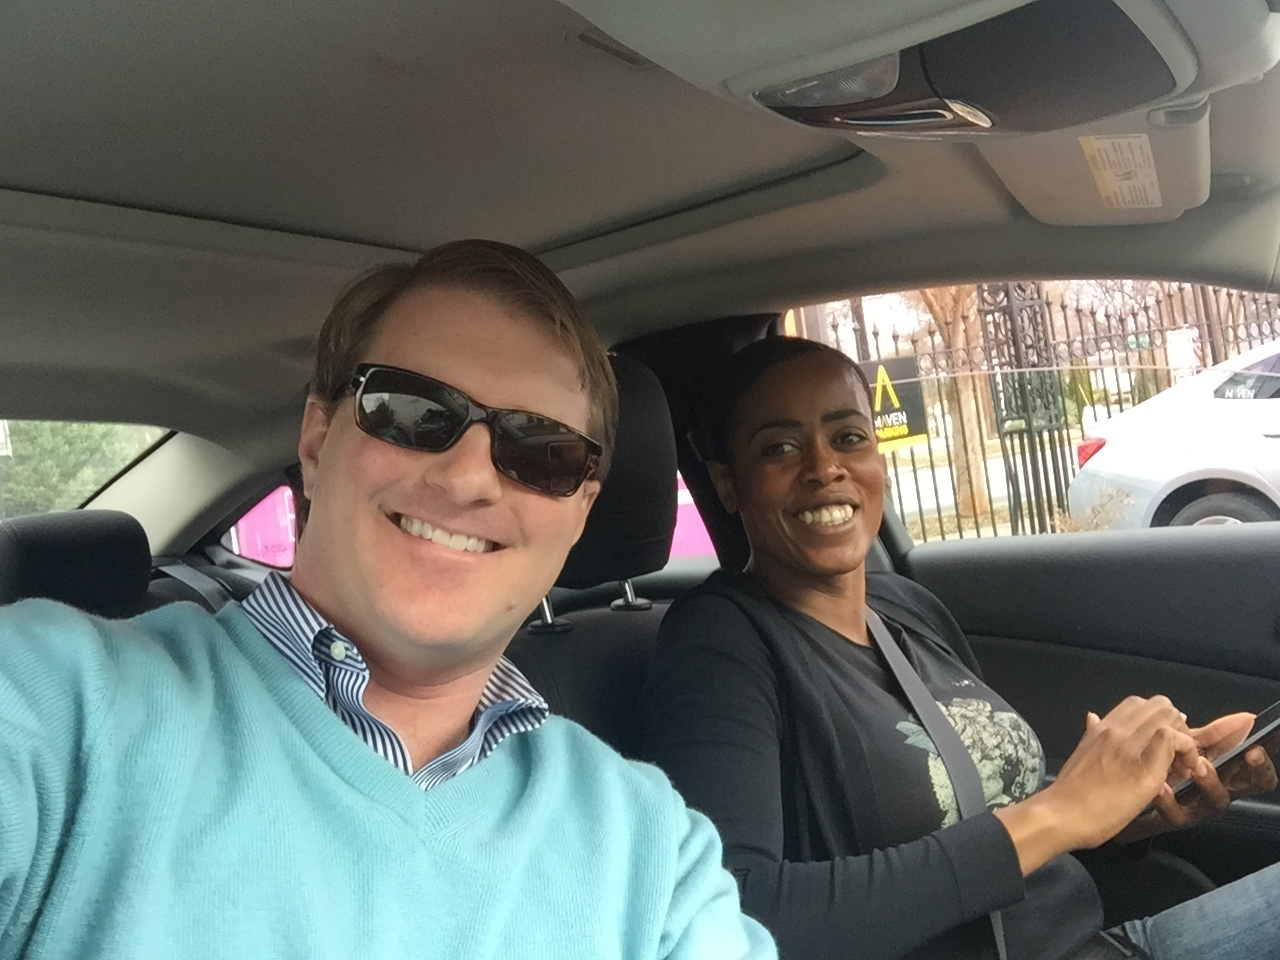 GM Sam with driver Bethany on his morning commute